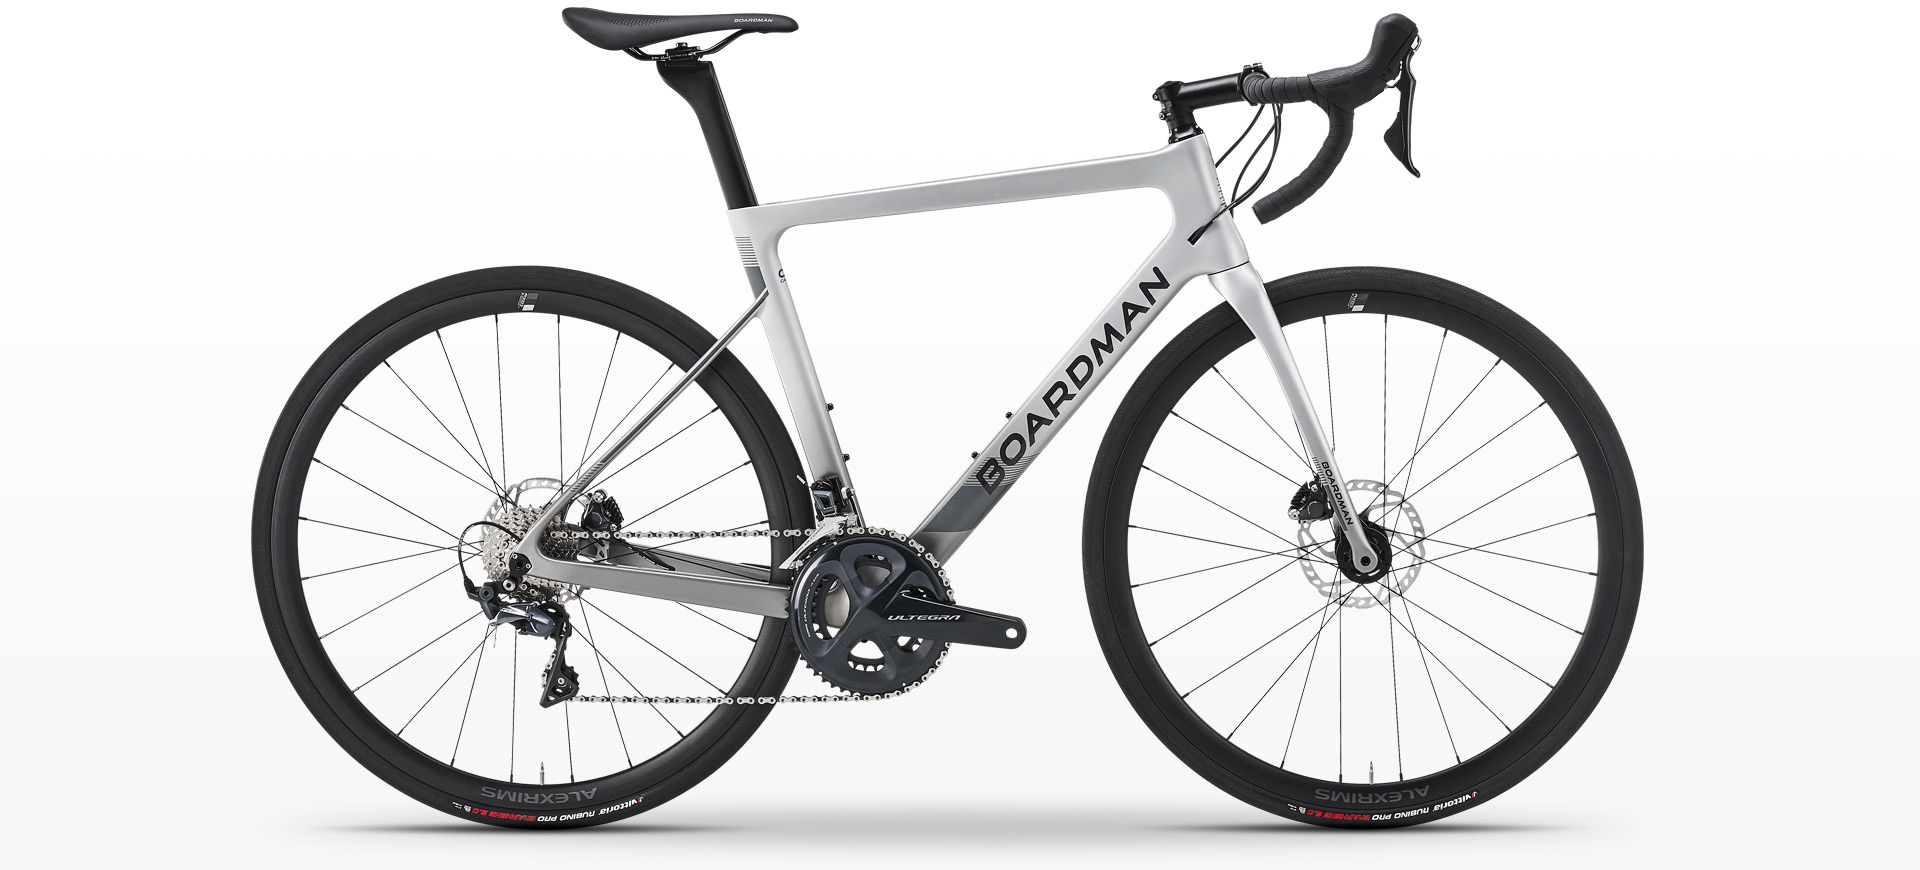 Boardman SLR 9.2 Disc brake road bike gallery image